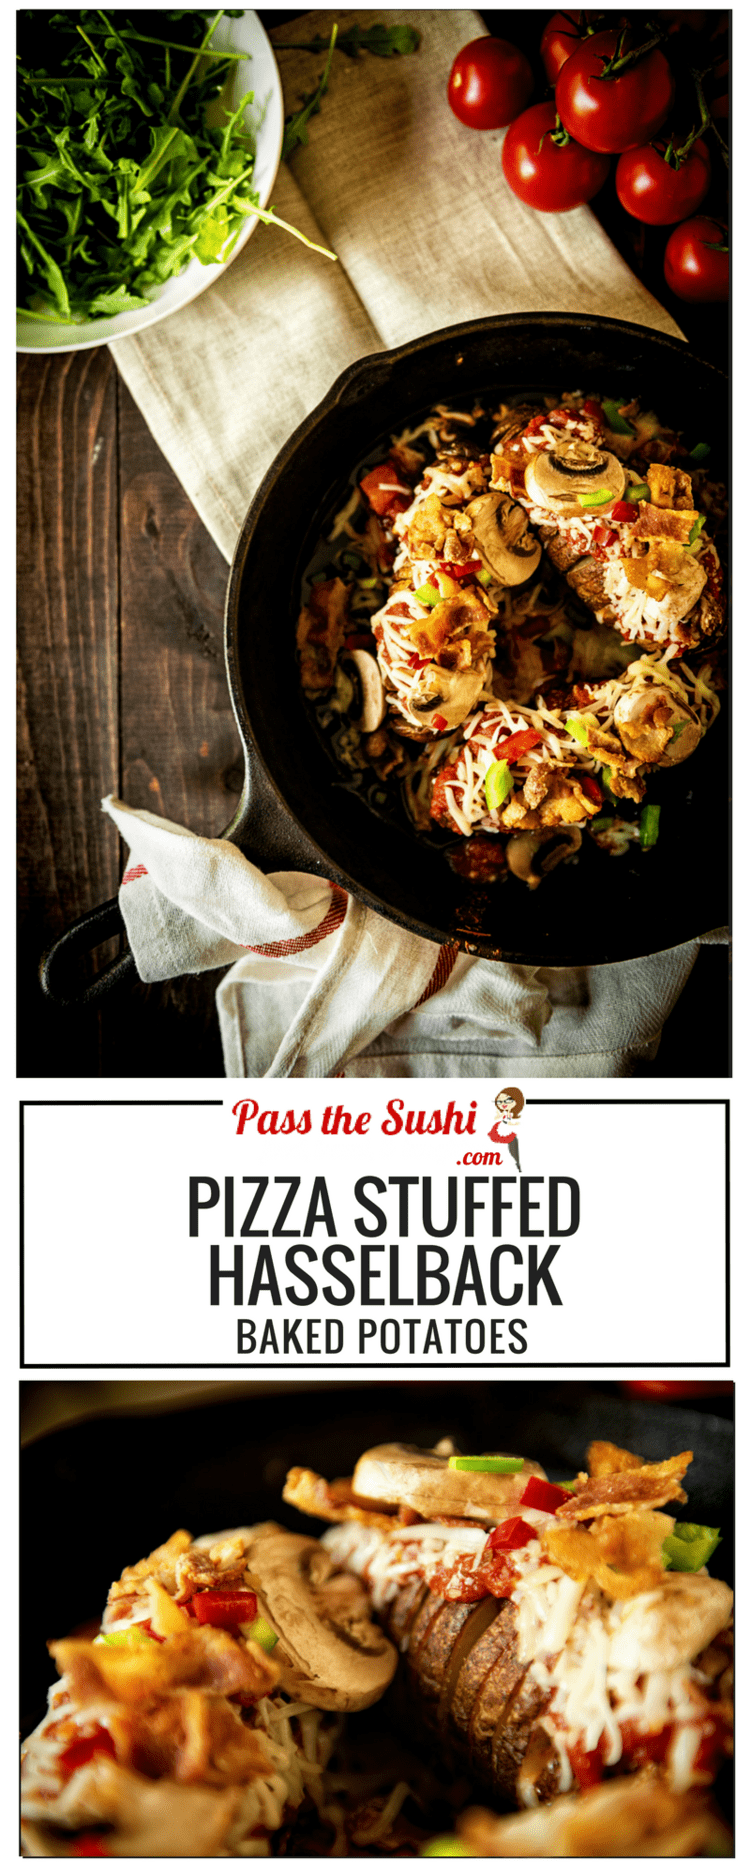 So fun!! Pizza Stuffed Hasselback Baked Potatoes | Recipe at PasstheSushi.com